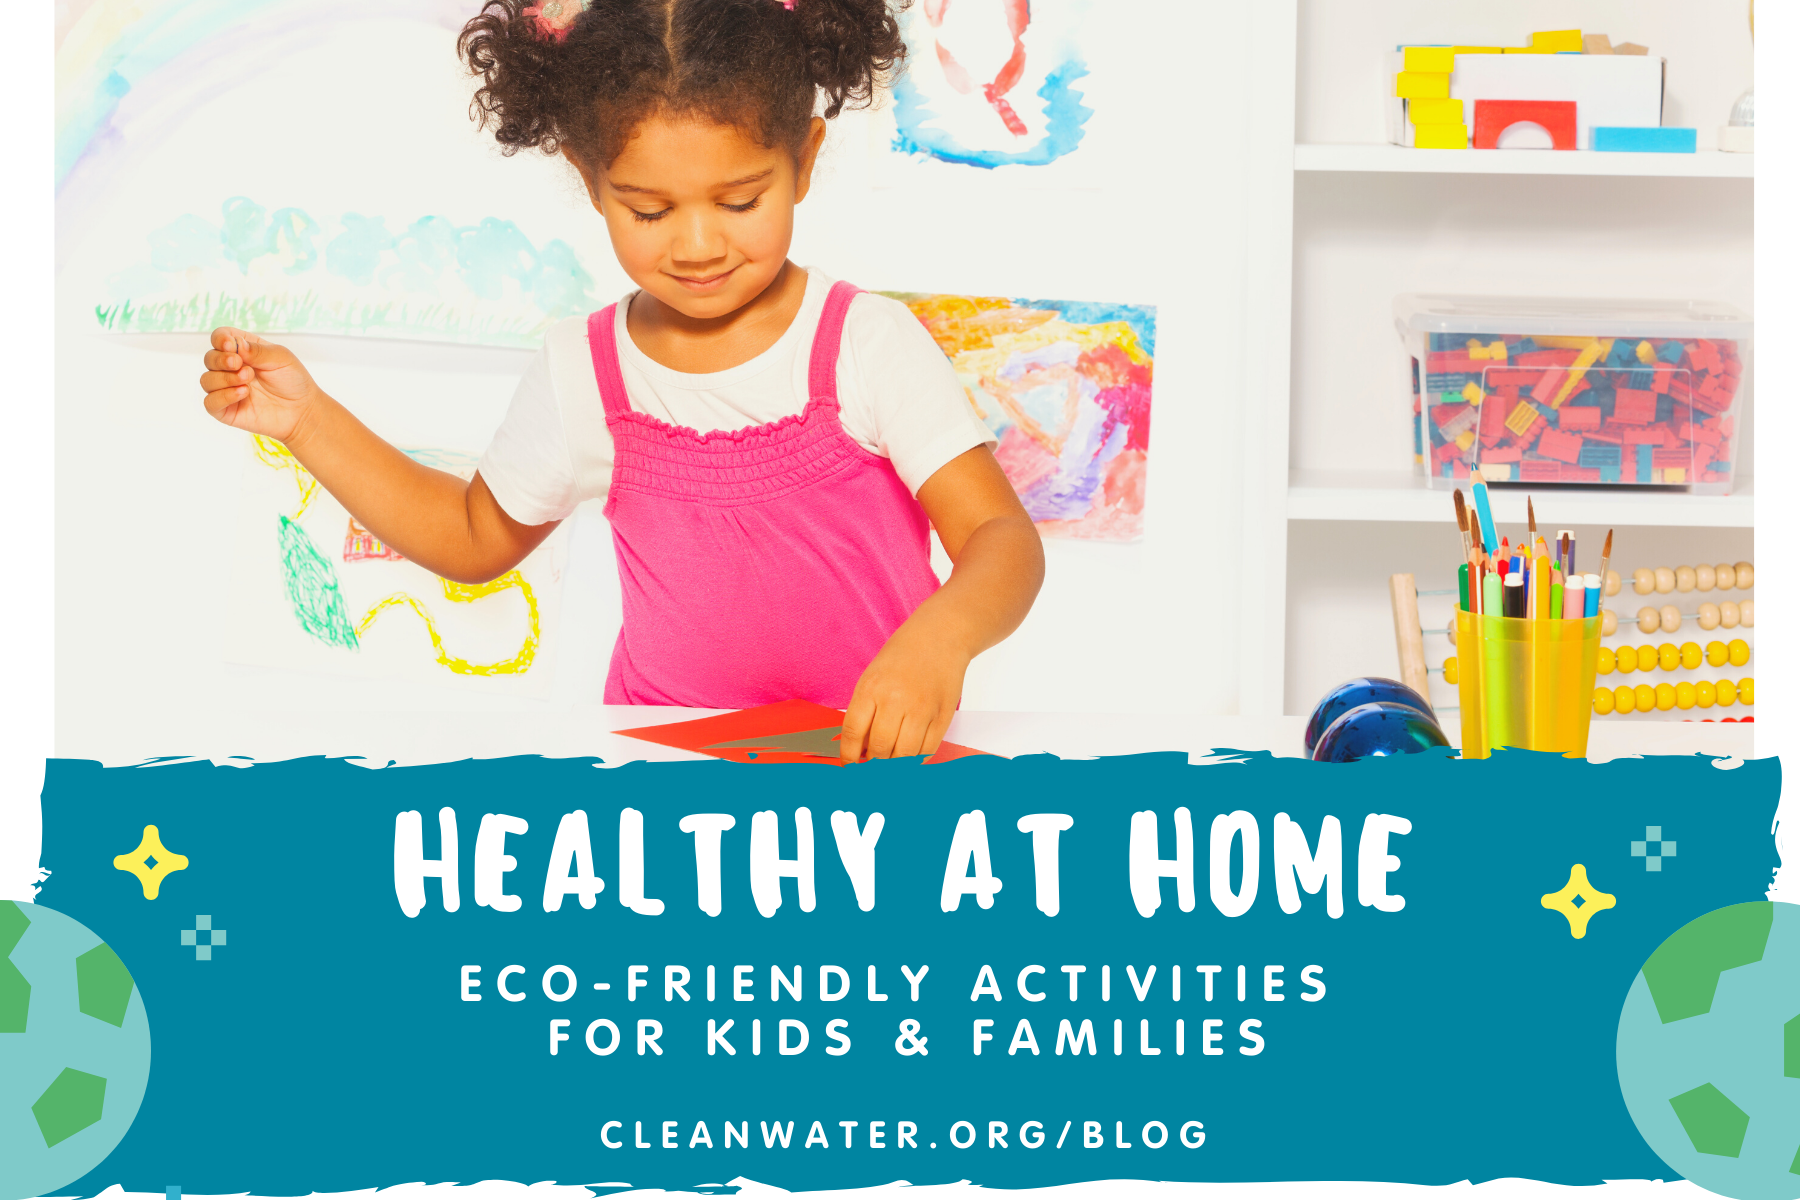 NJ Eco Friendly Activities for Kids Canva